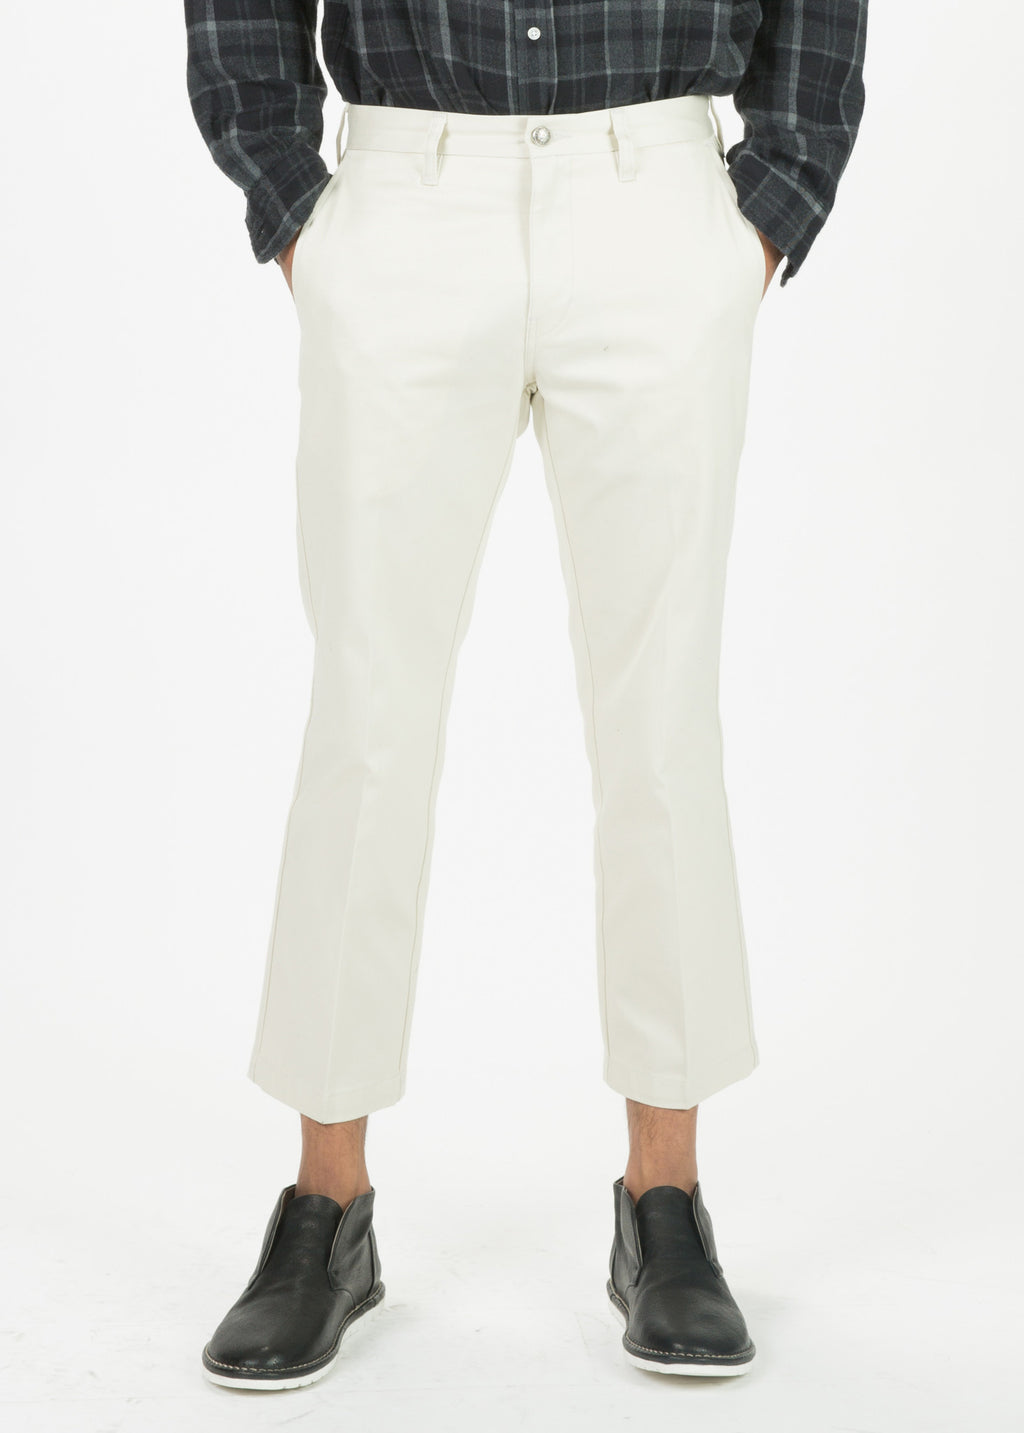 R13 Men's Cropped Chino